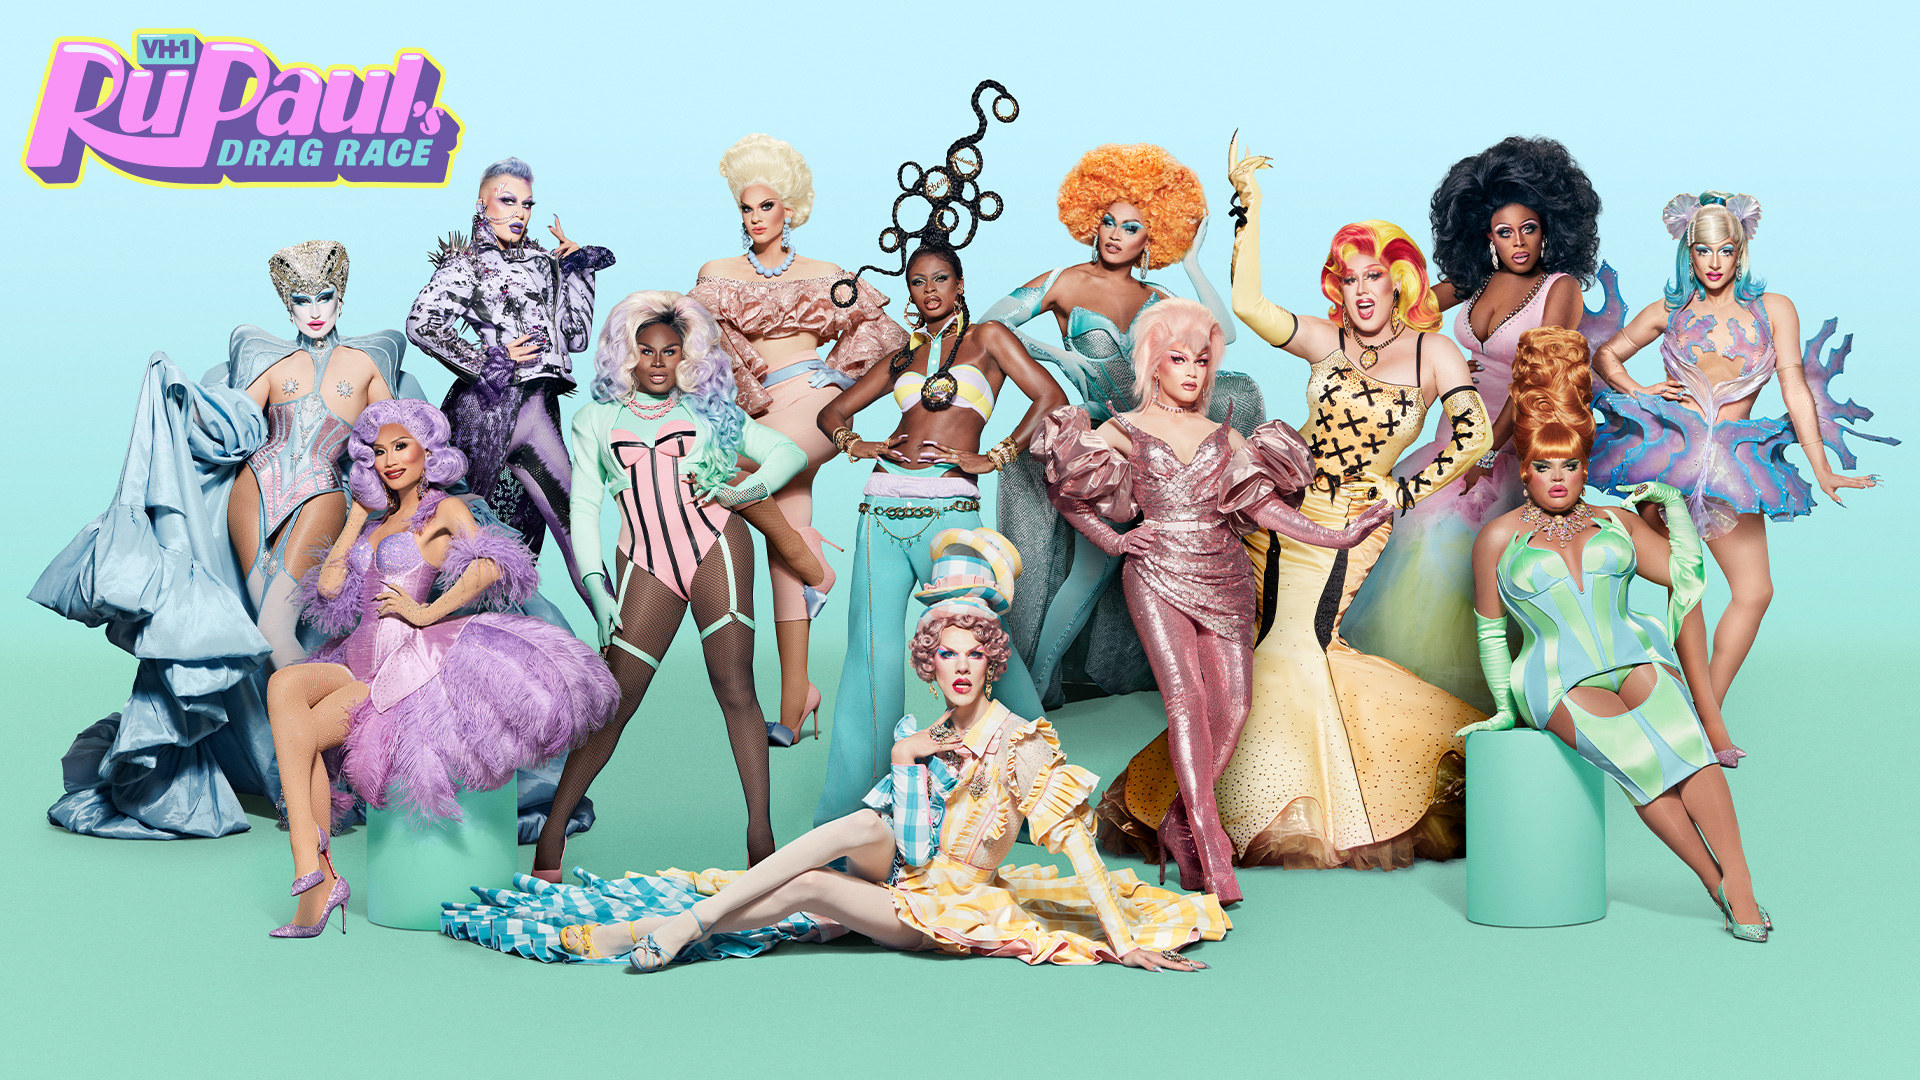 Promotional photo of the entire cast dressed in pastel colors with a teal background